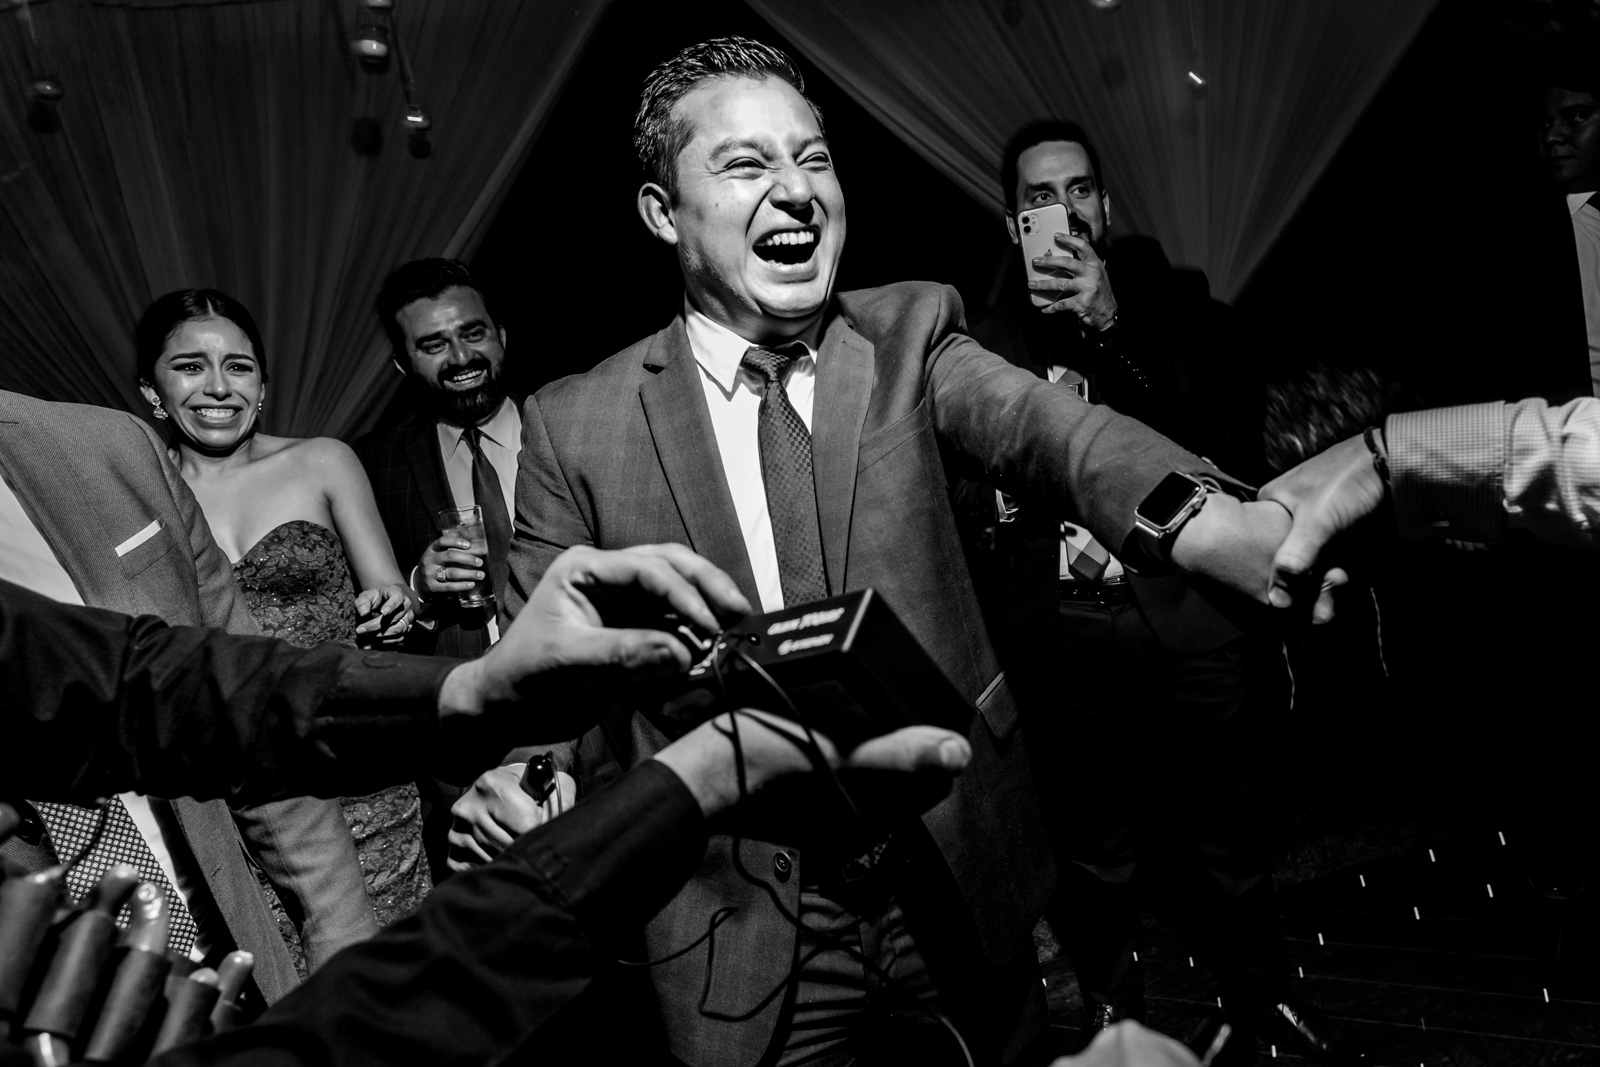 wedding party, guy play with the electric machine and having fun